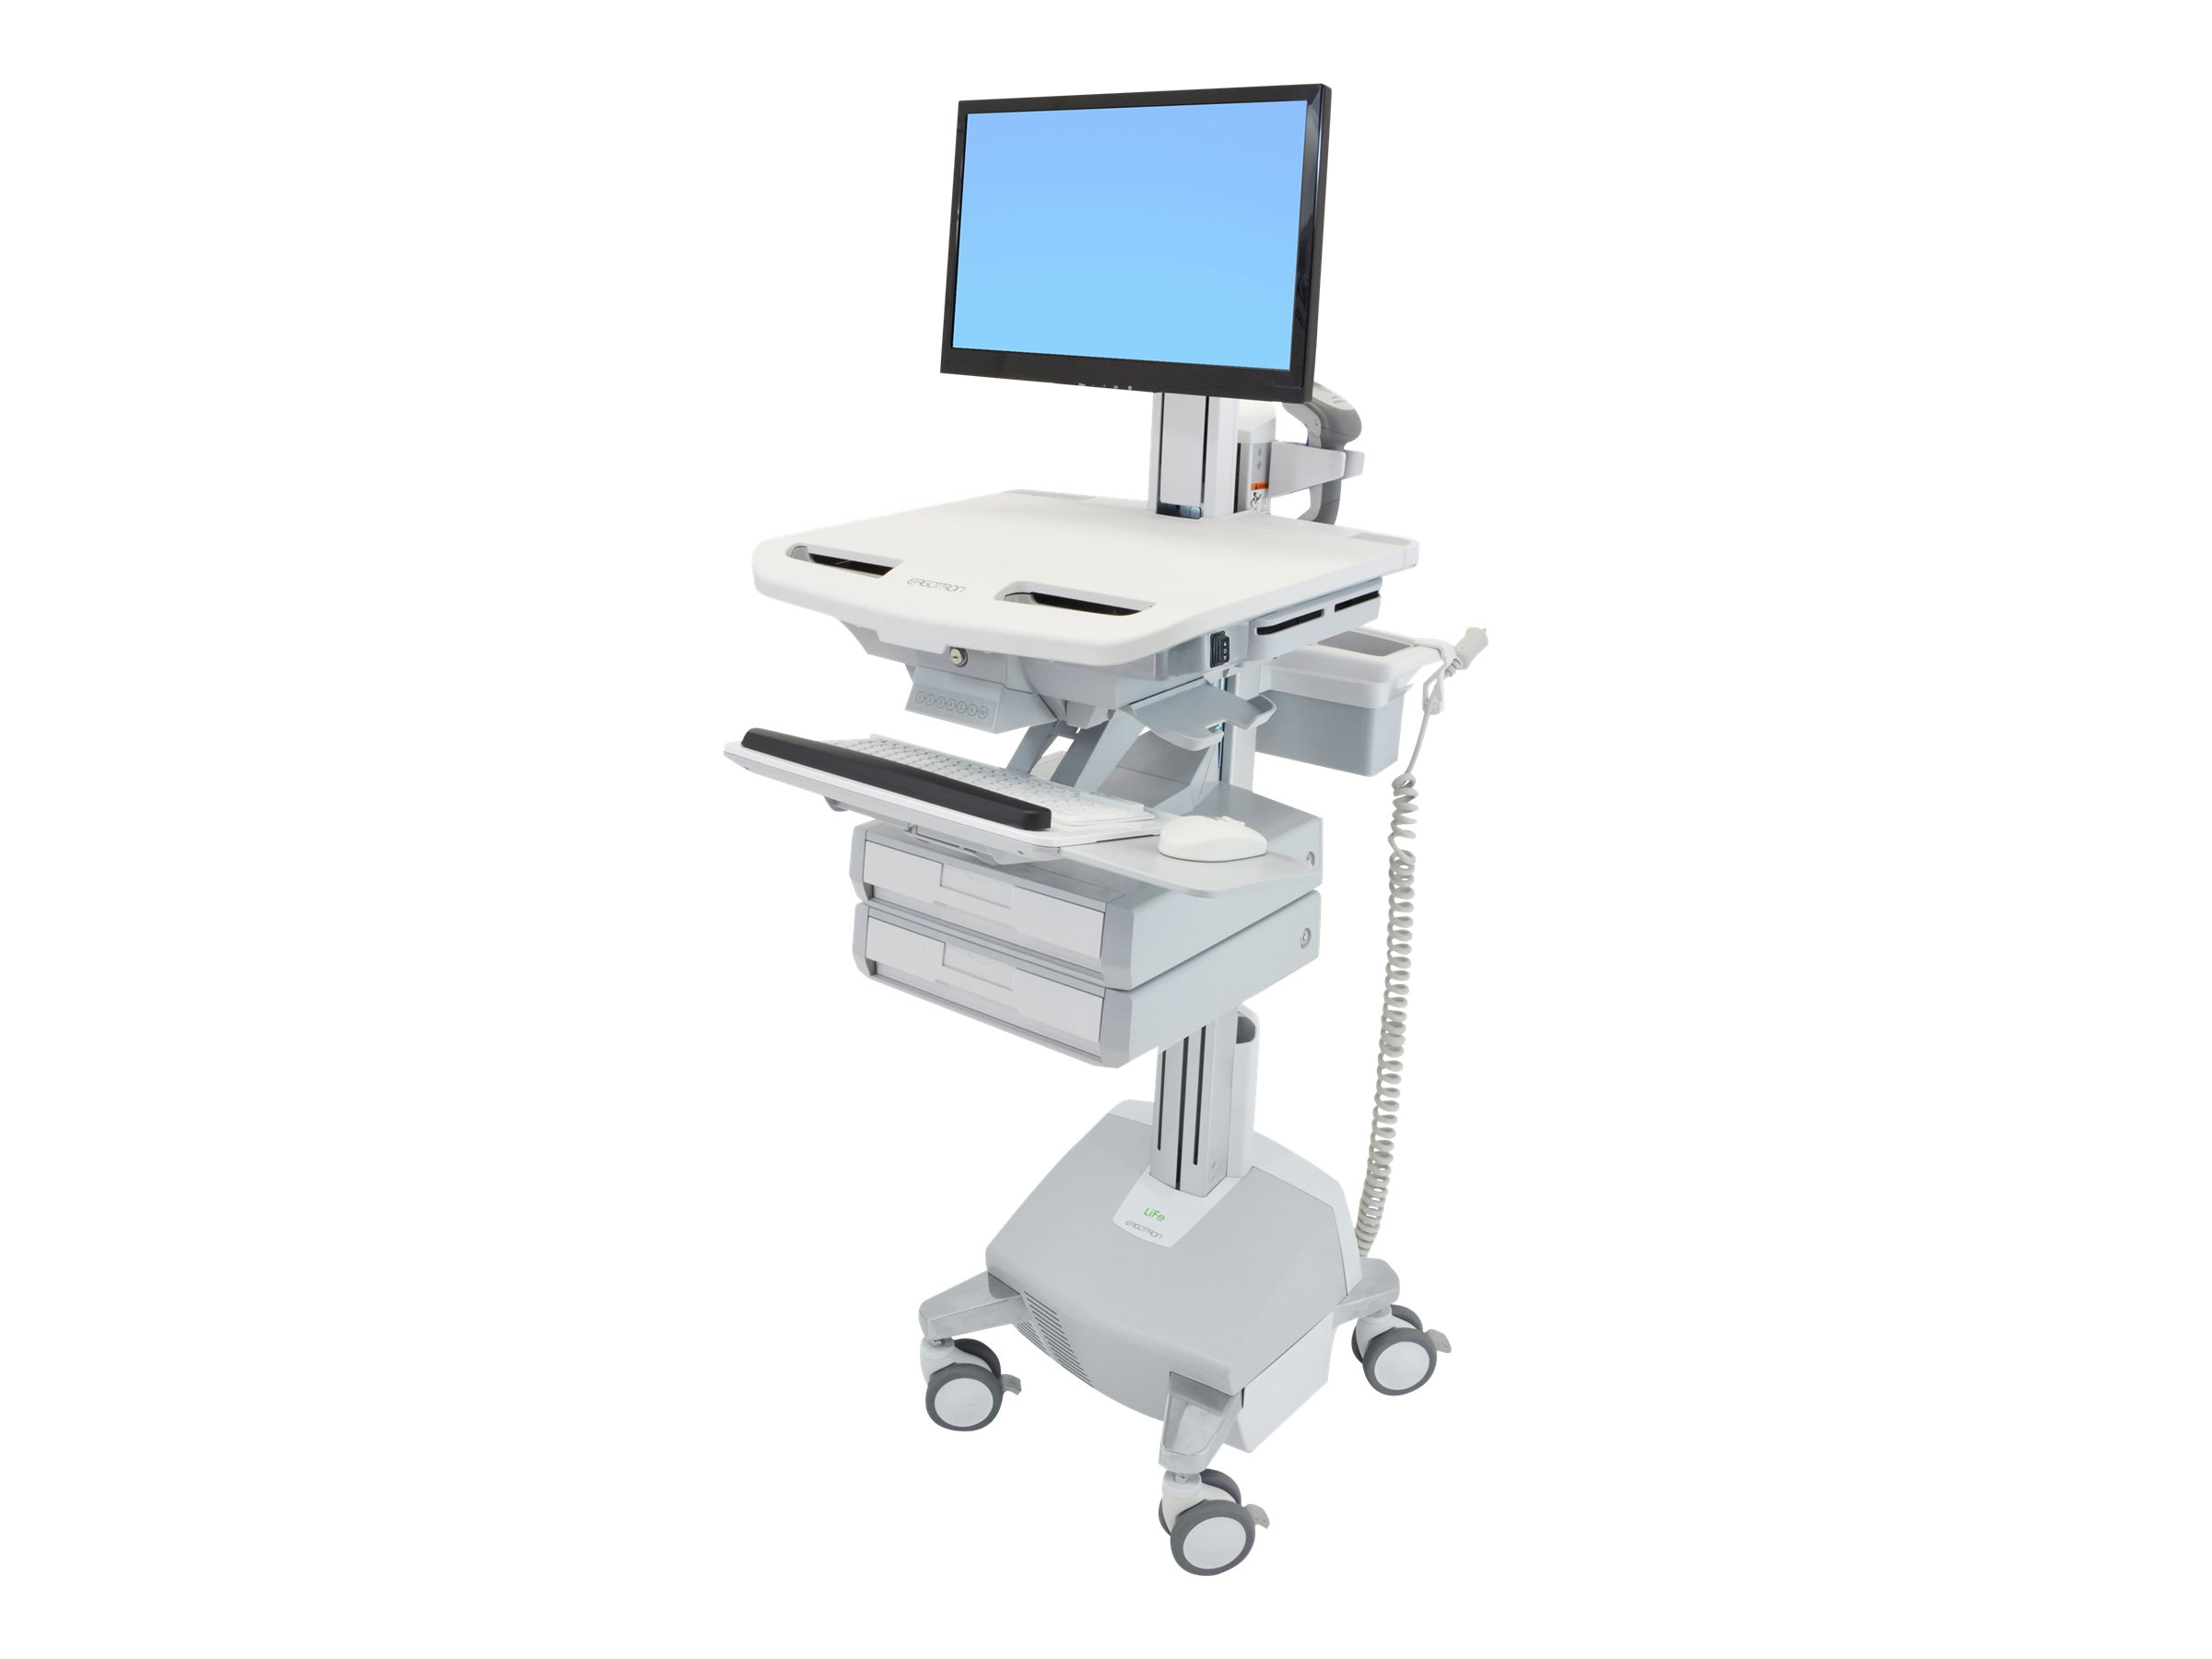 Ergotron StyleView Electric Lift Cart with Pivot, LiFe Powered, 2 Drawers (1x2) - cart (open architecture)